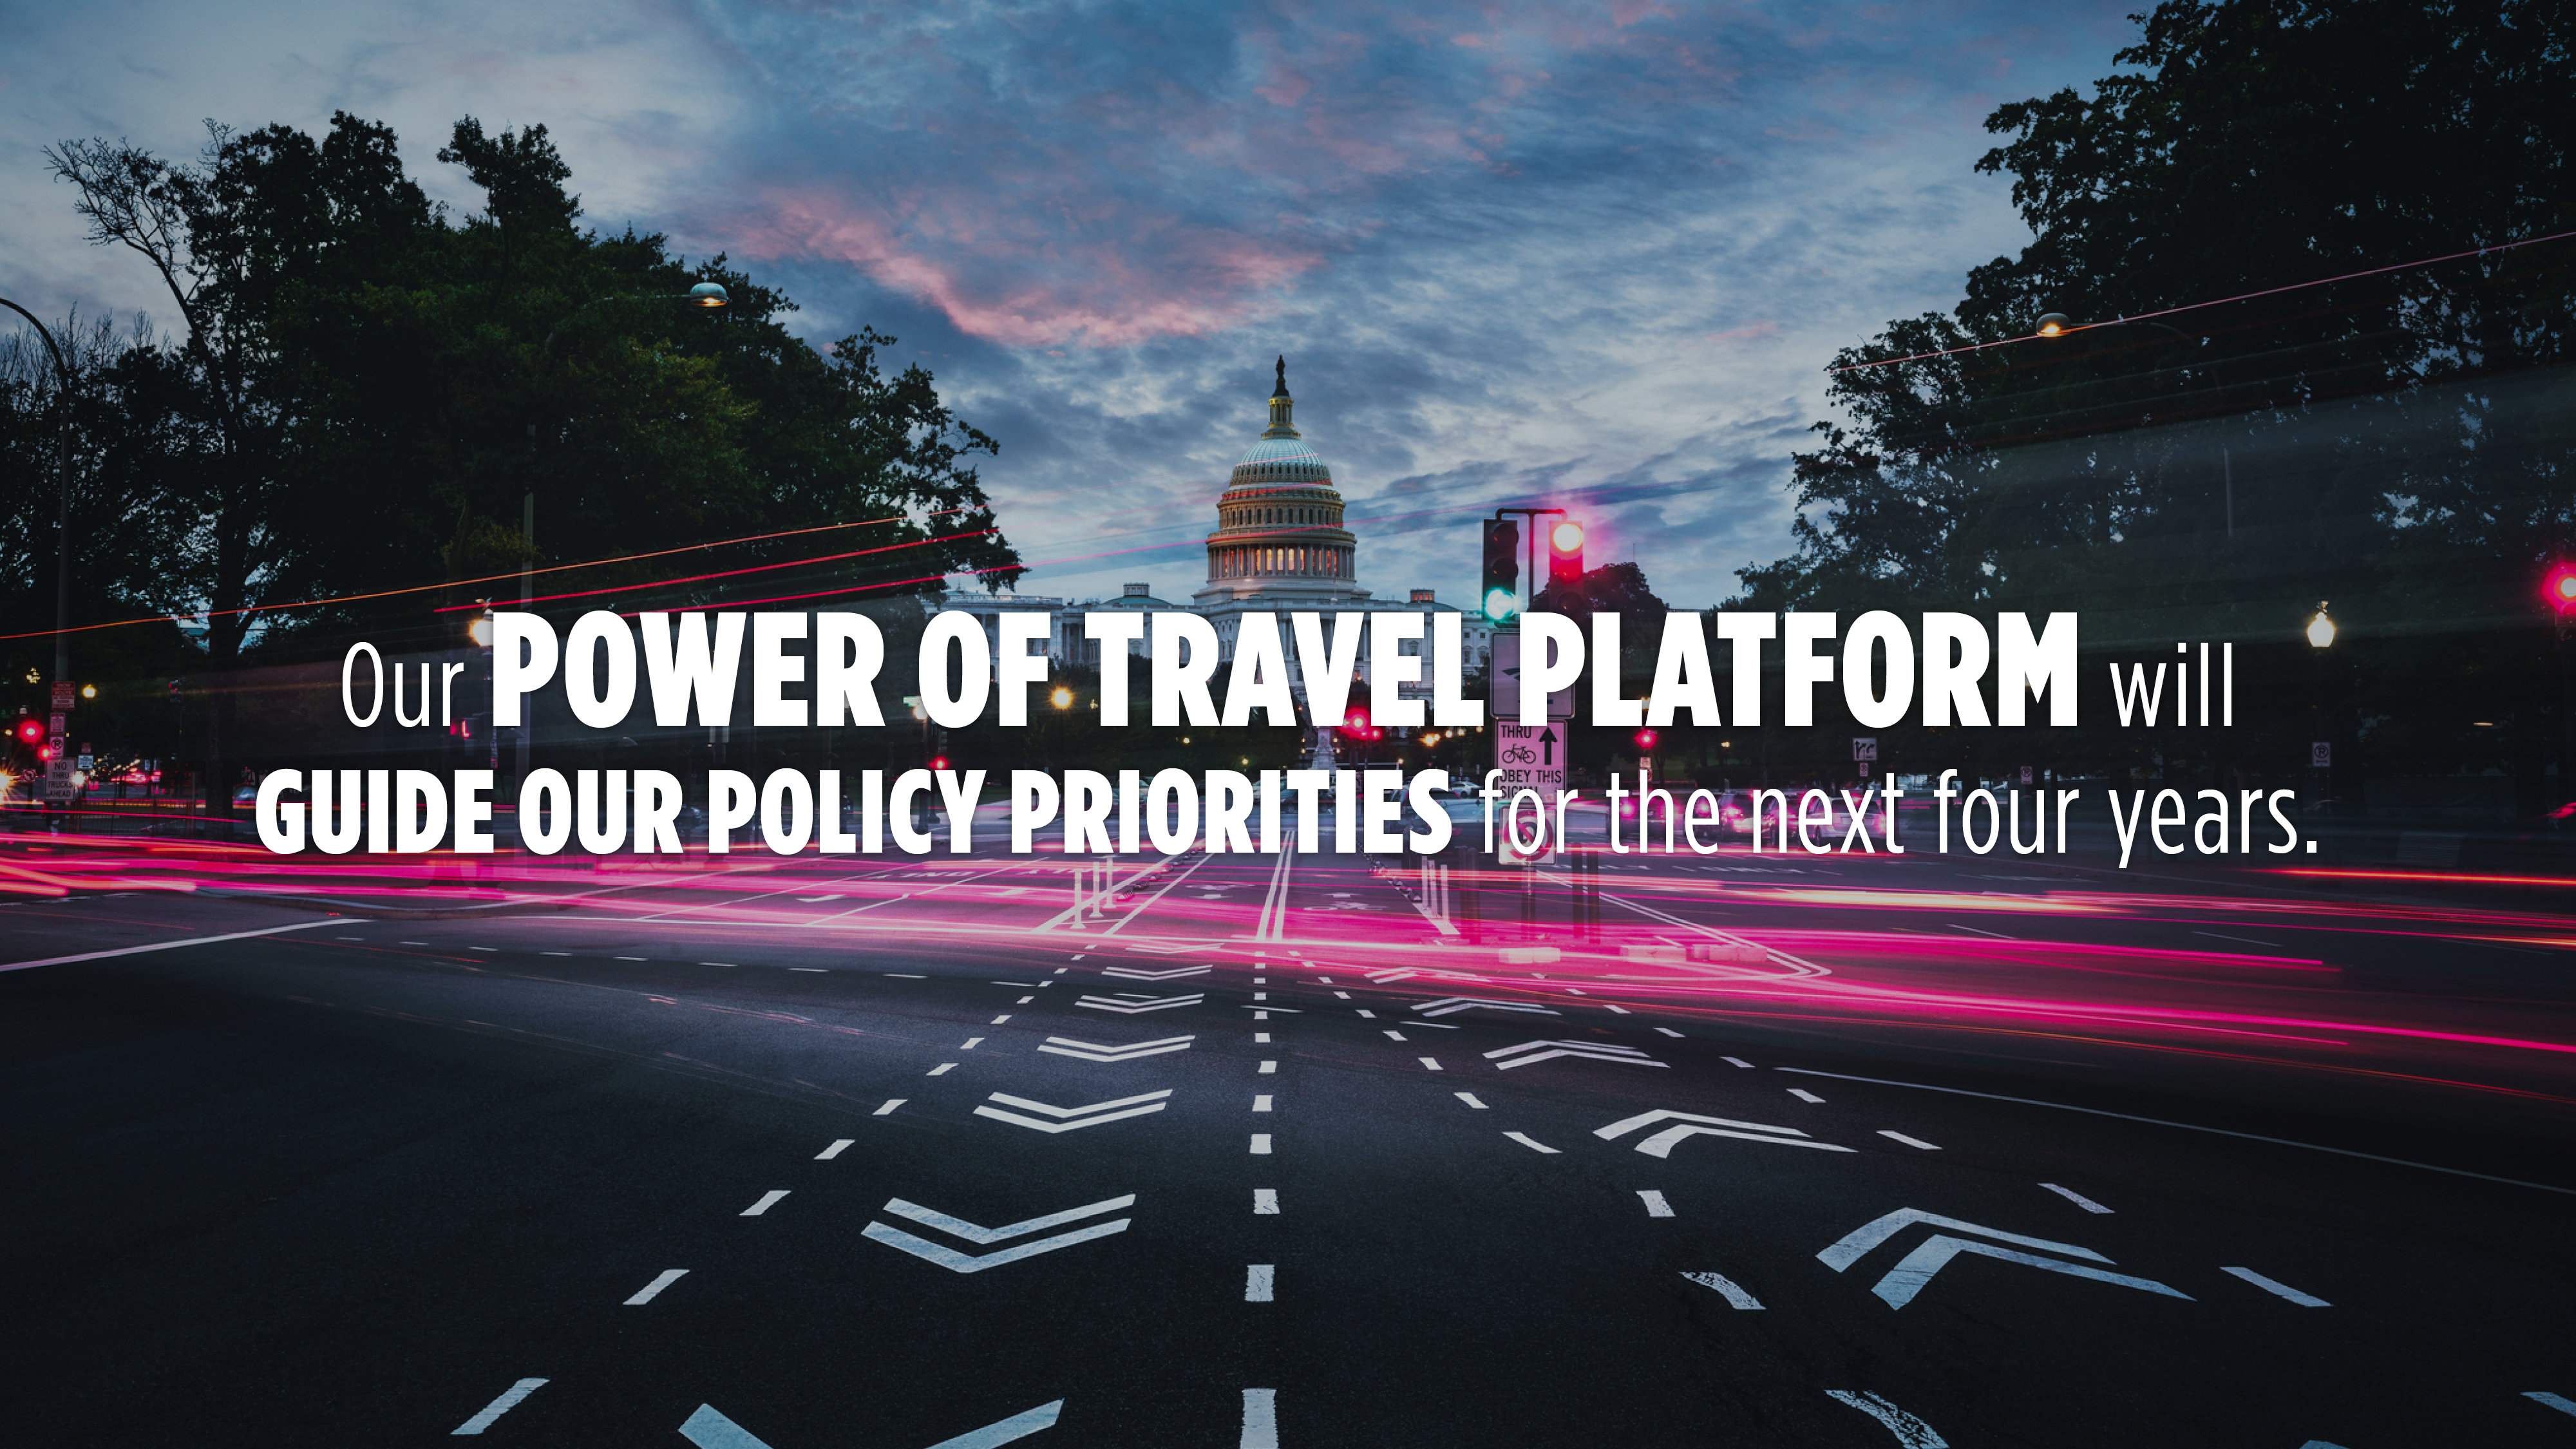 Our Power of Travel Platform will guide our policy priorities for the next four years.